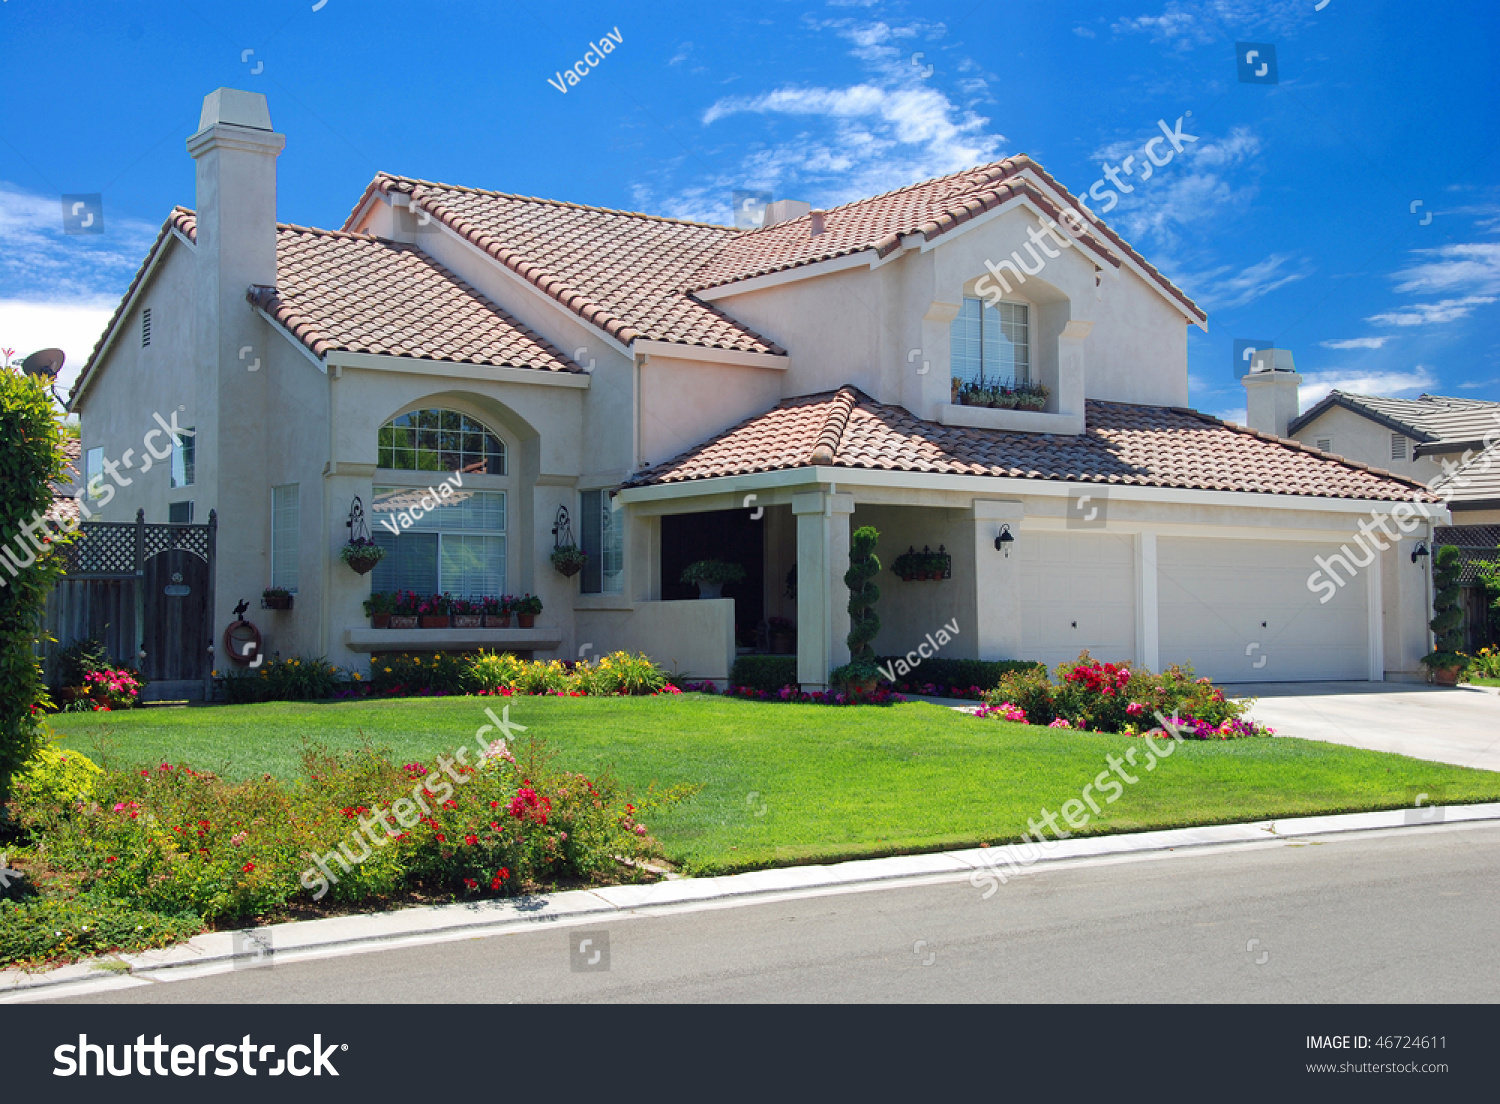 New American Dream Home Stock Photo 46724611 Shutterstock